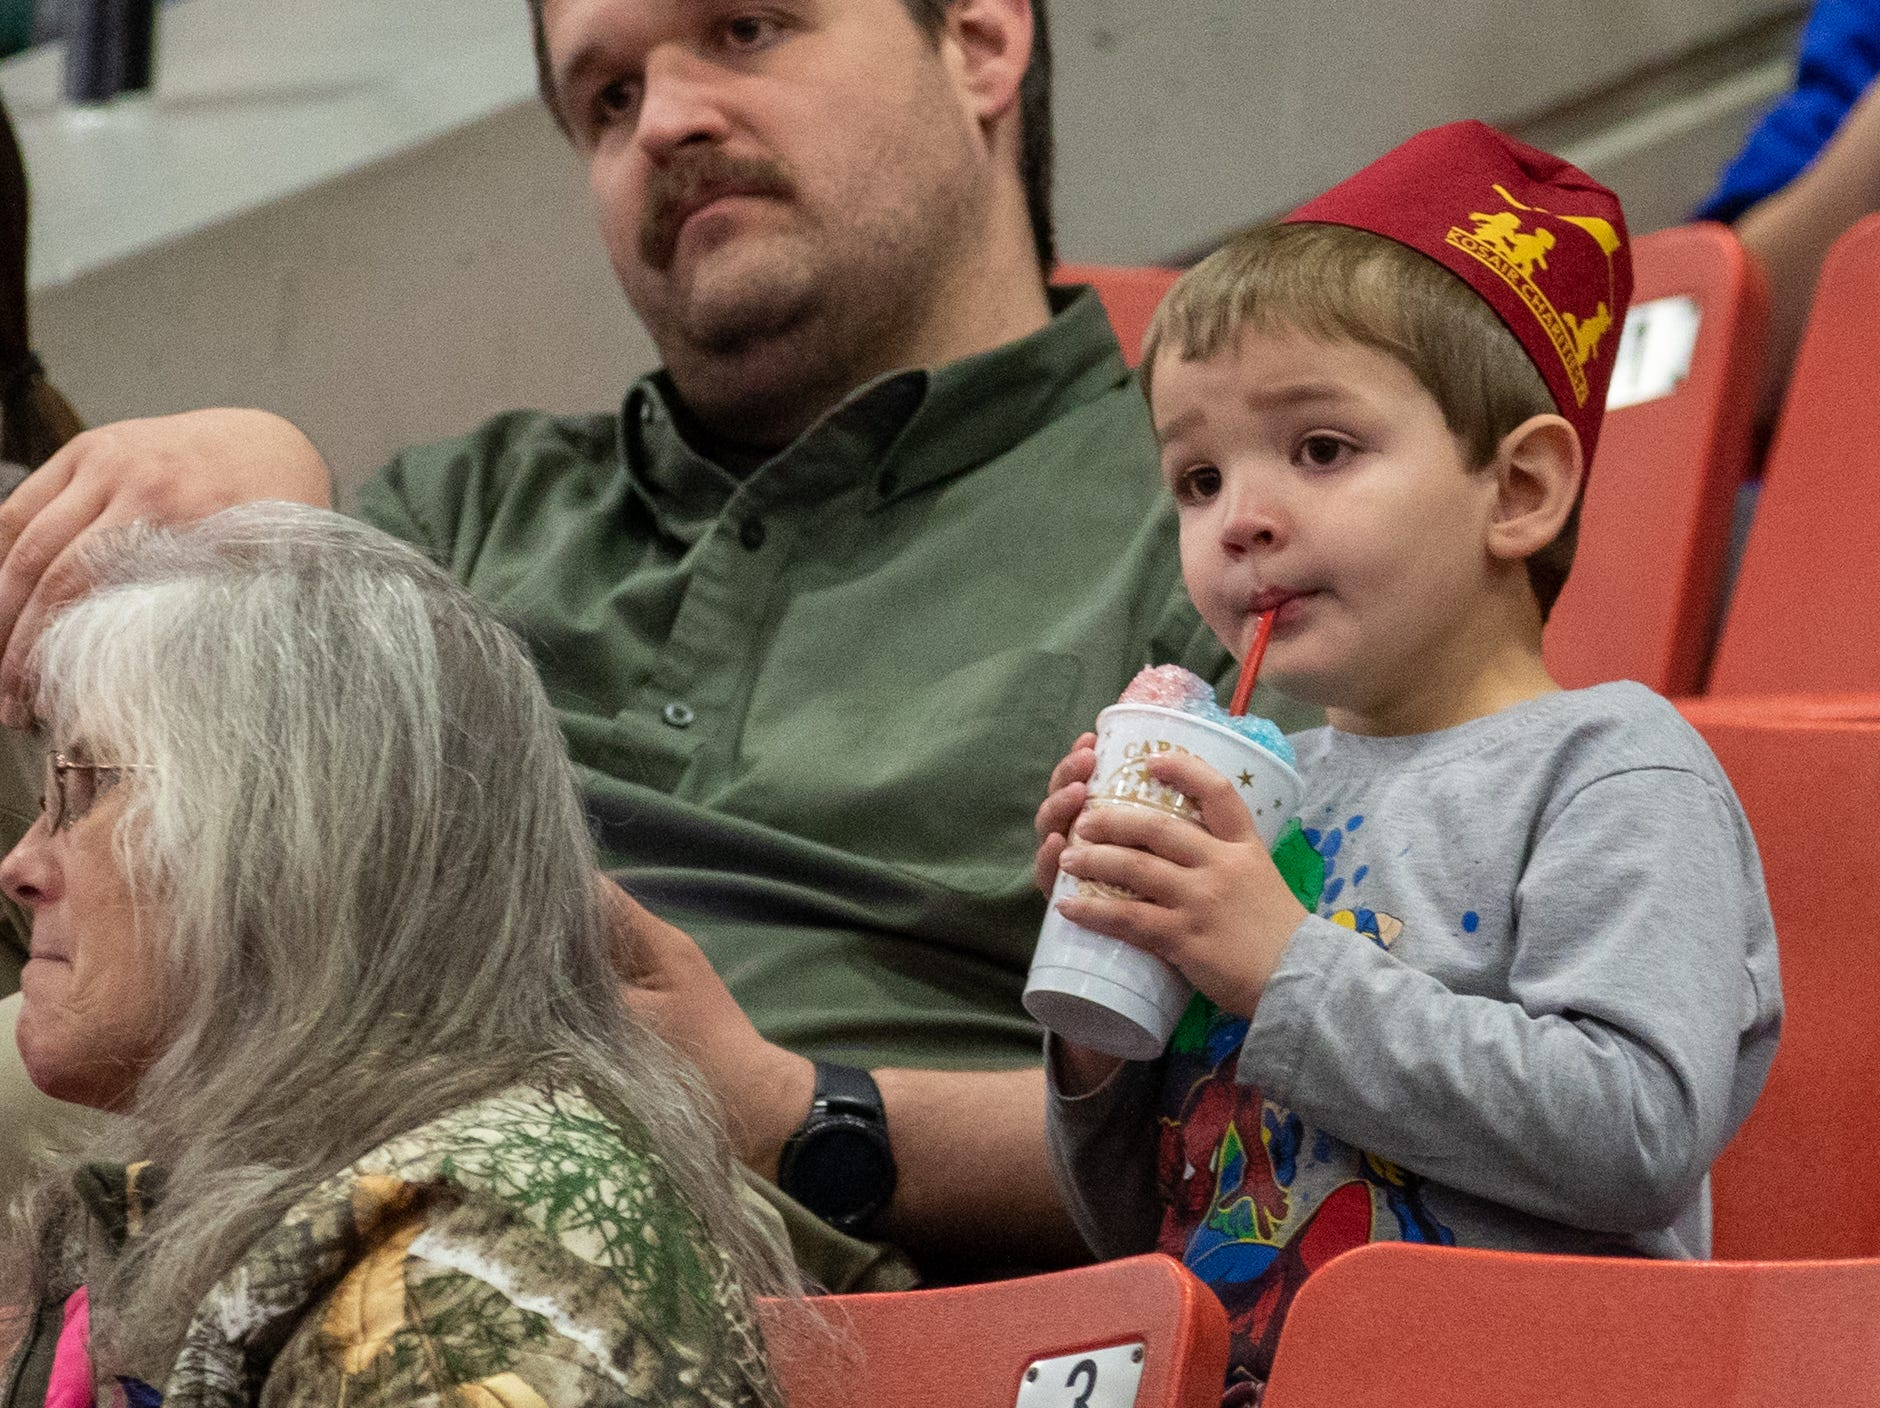 Slurping a shaved ice drink, a young spectator waits anxiously for the circus to begin, Saturday, Feb. 9, 2019 in Louisville Ky.